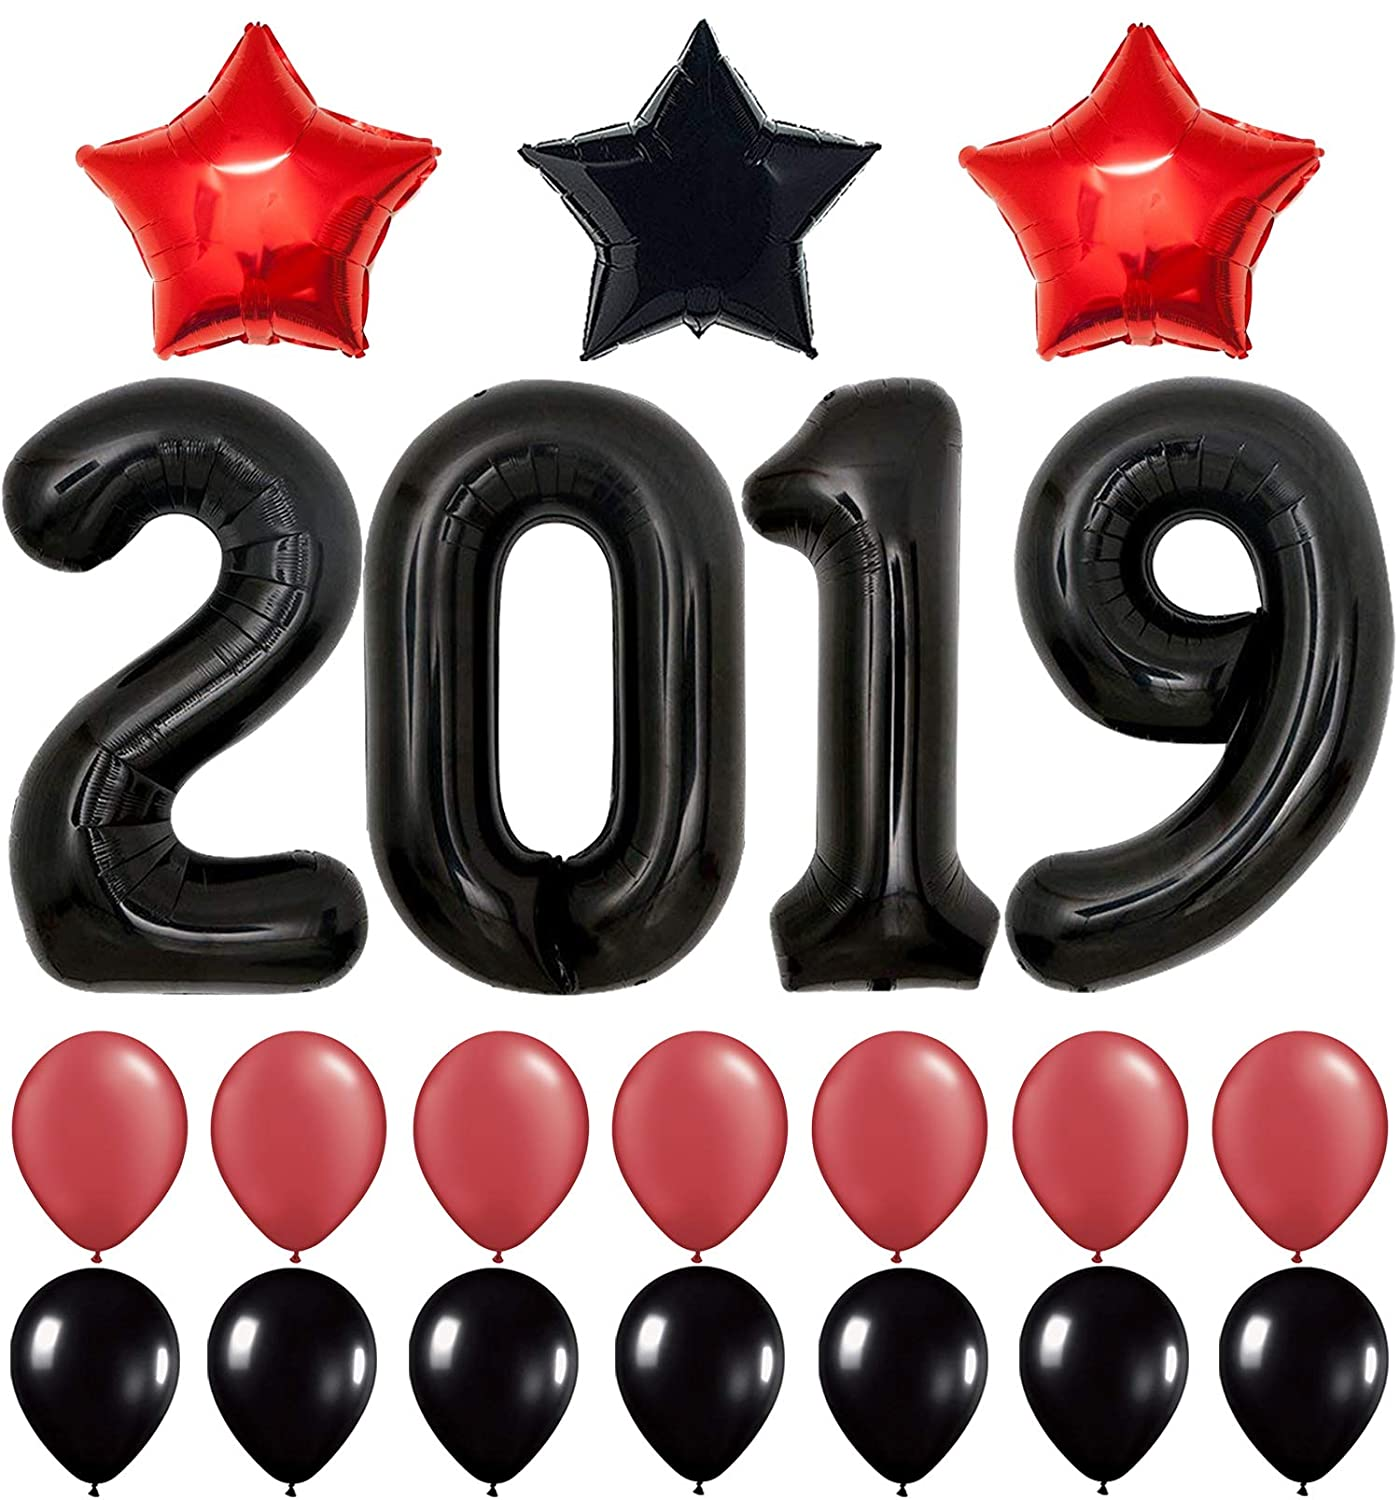 2019 Balloons, Red for New-Year, Large 40 Inch | Red and Black Balloon Kit | New Years Eve Party Supplies 2019 | Graduations Party Supplies 2019 | New Years Party Decorations, Graduations Decorations